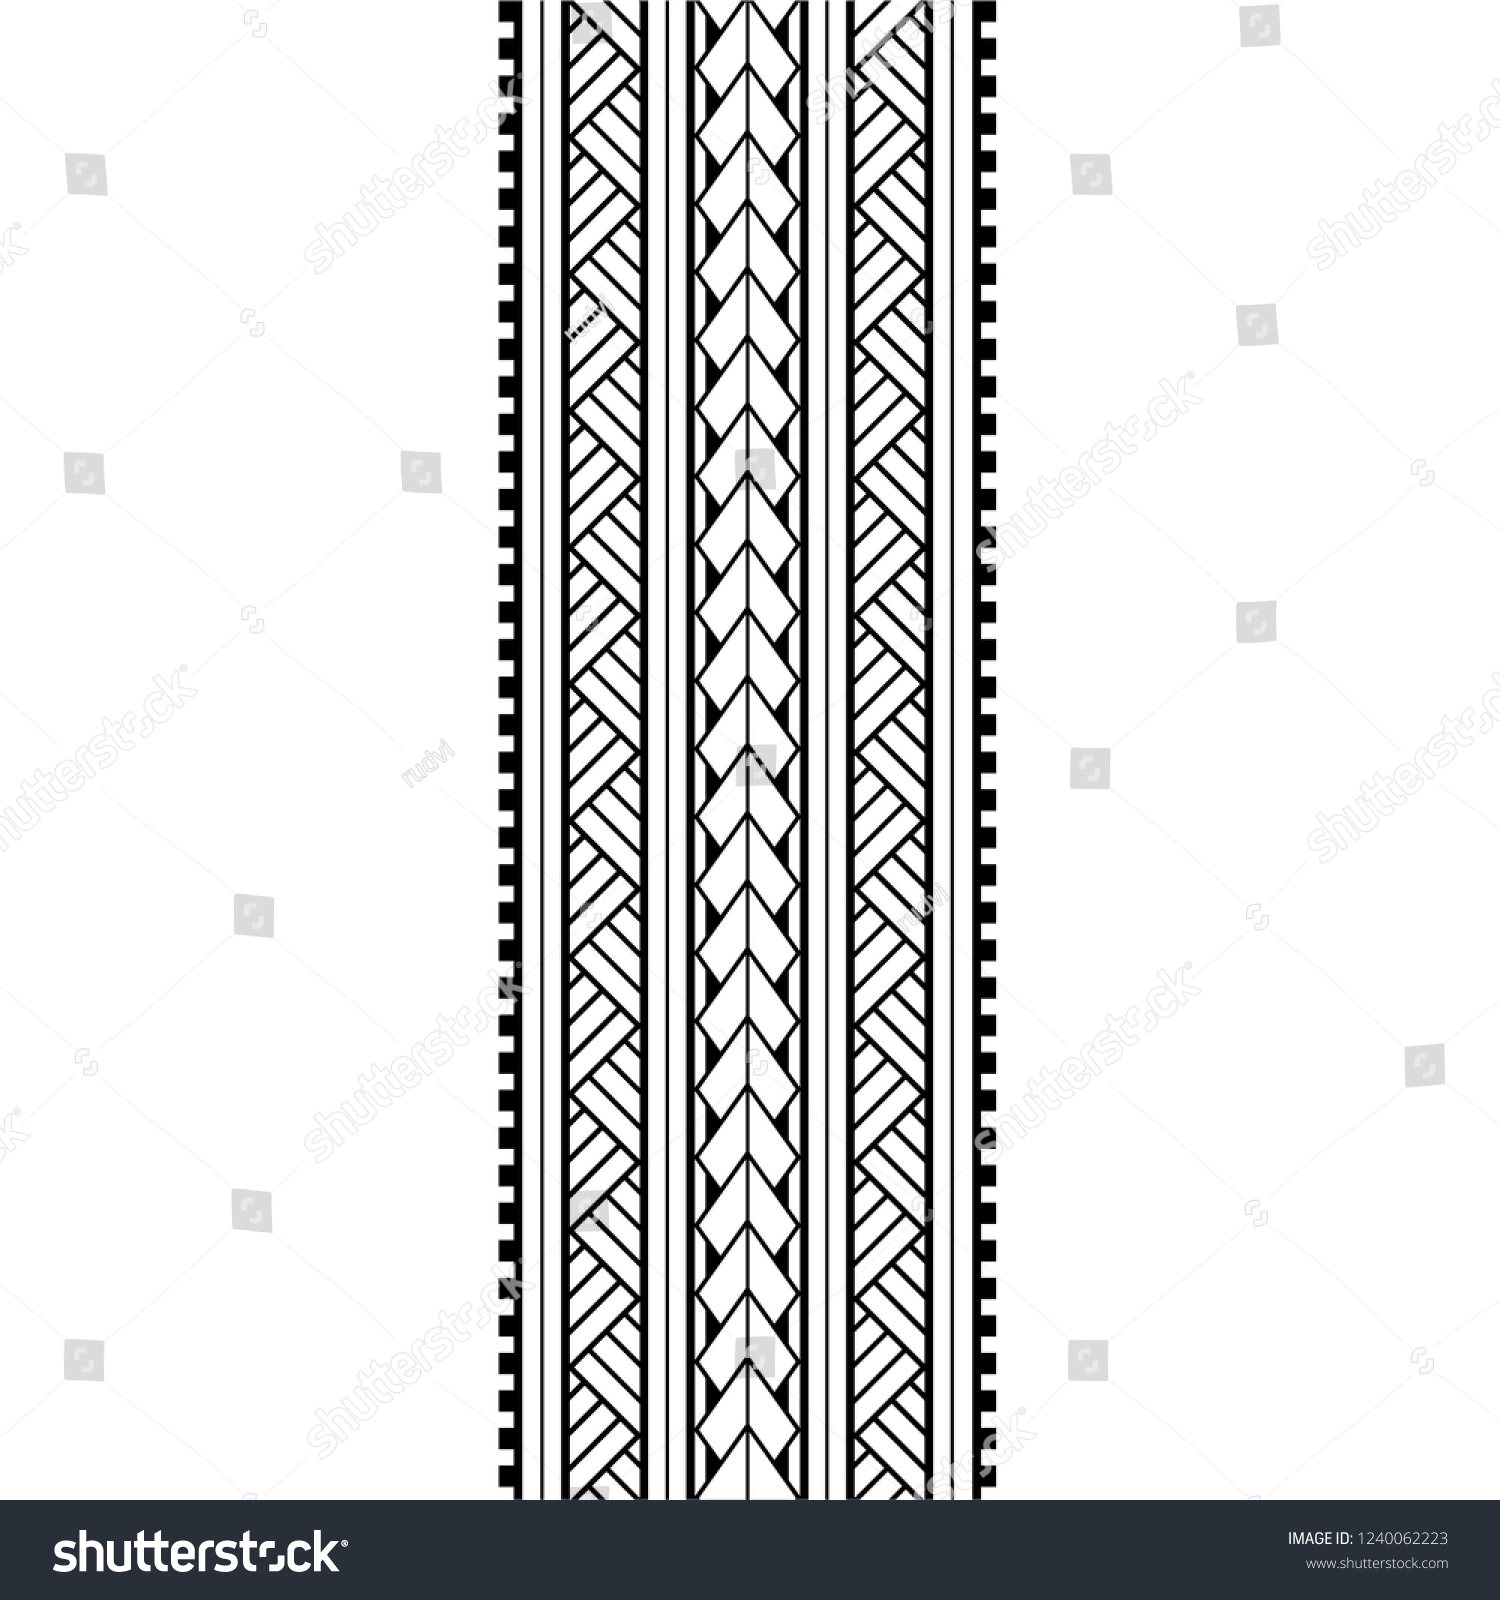 5ea5880ea Polynesian pattern tattoo for arm designs, tattoo lace border, samoan  forearm and leg design